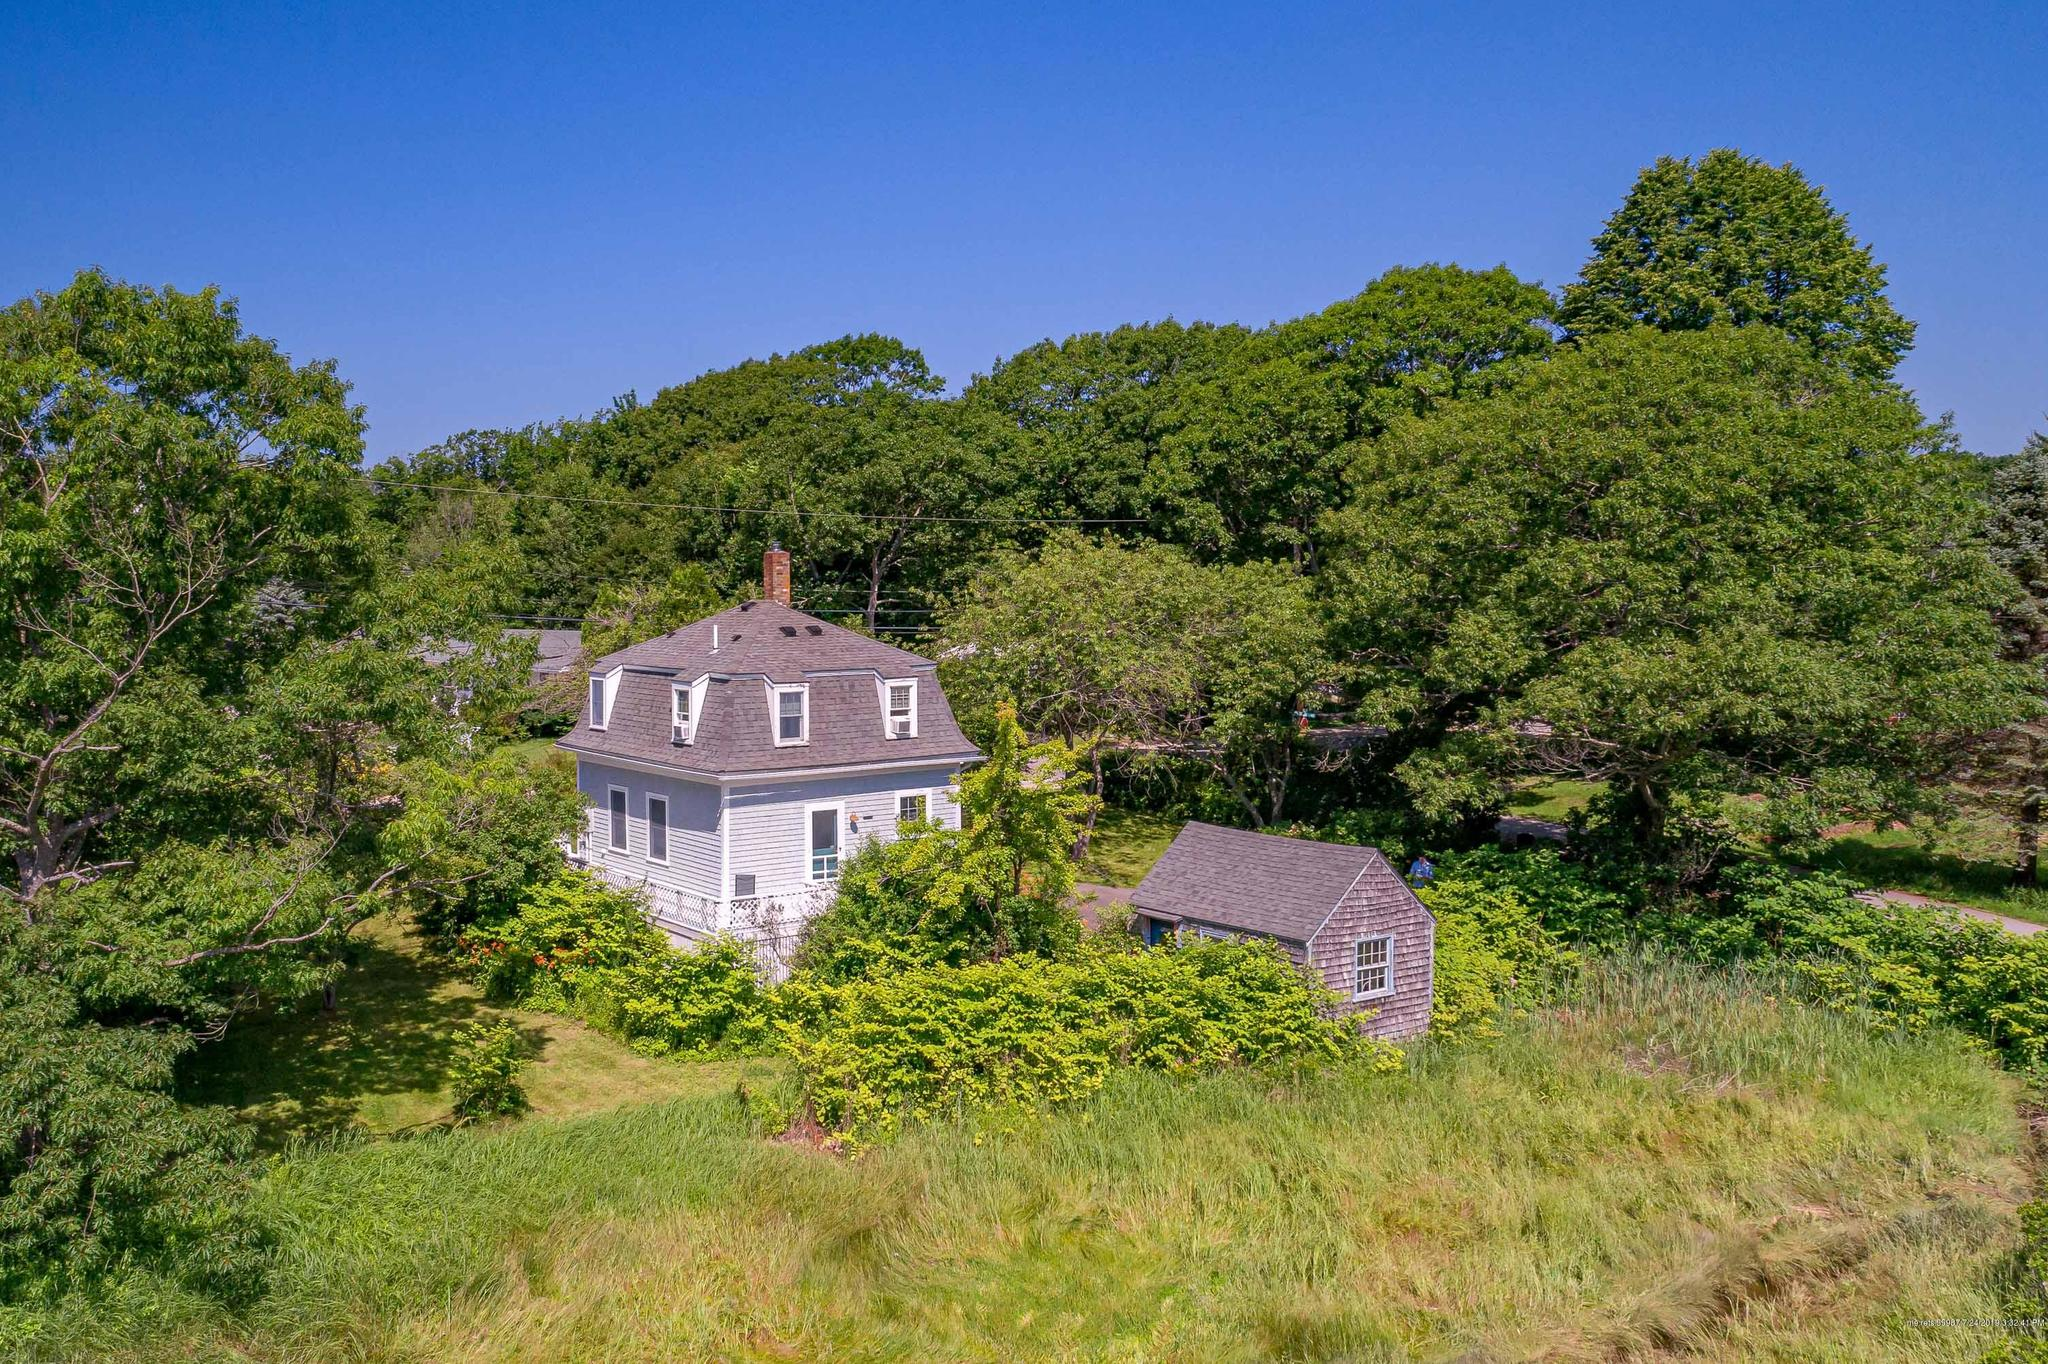 17 Mills Road Kennebunkport Me Mls 1411141 Verani Realty